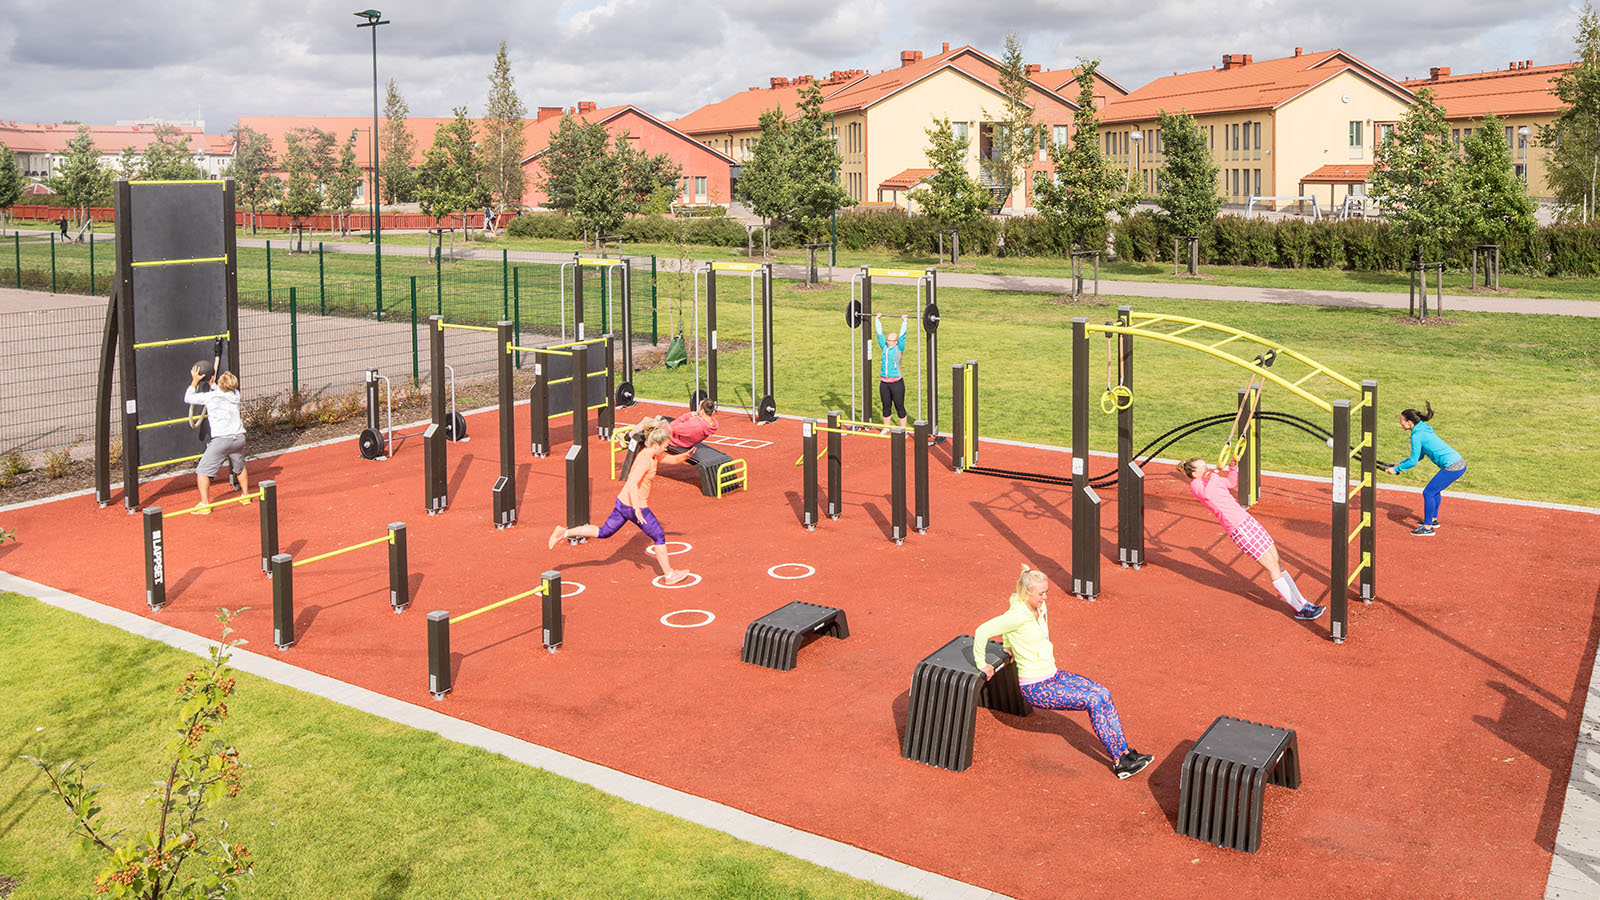 10 Reasons Why Outdoor Training Is Better Than A Gym